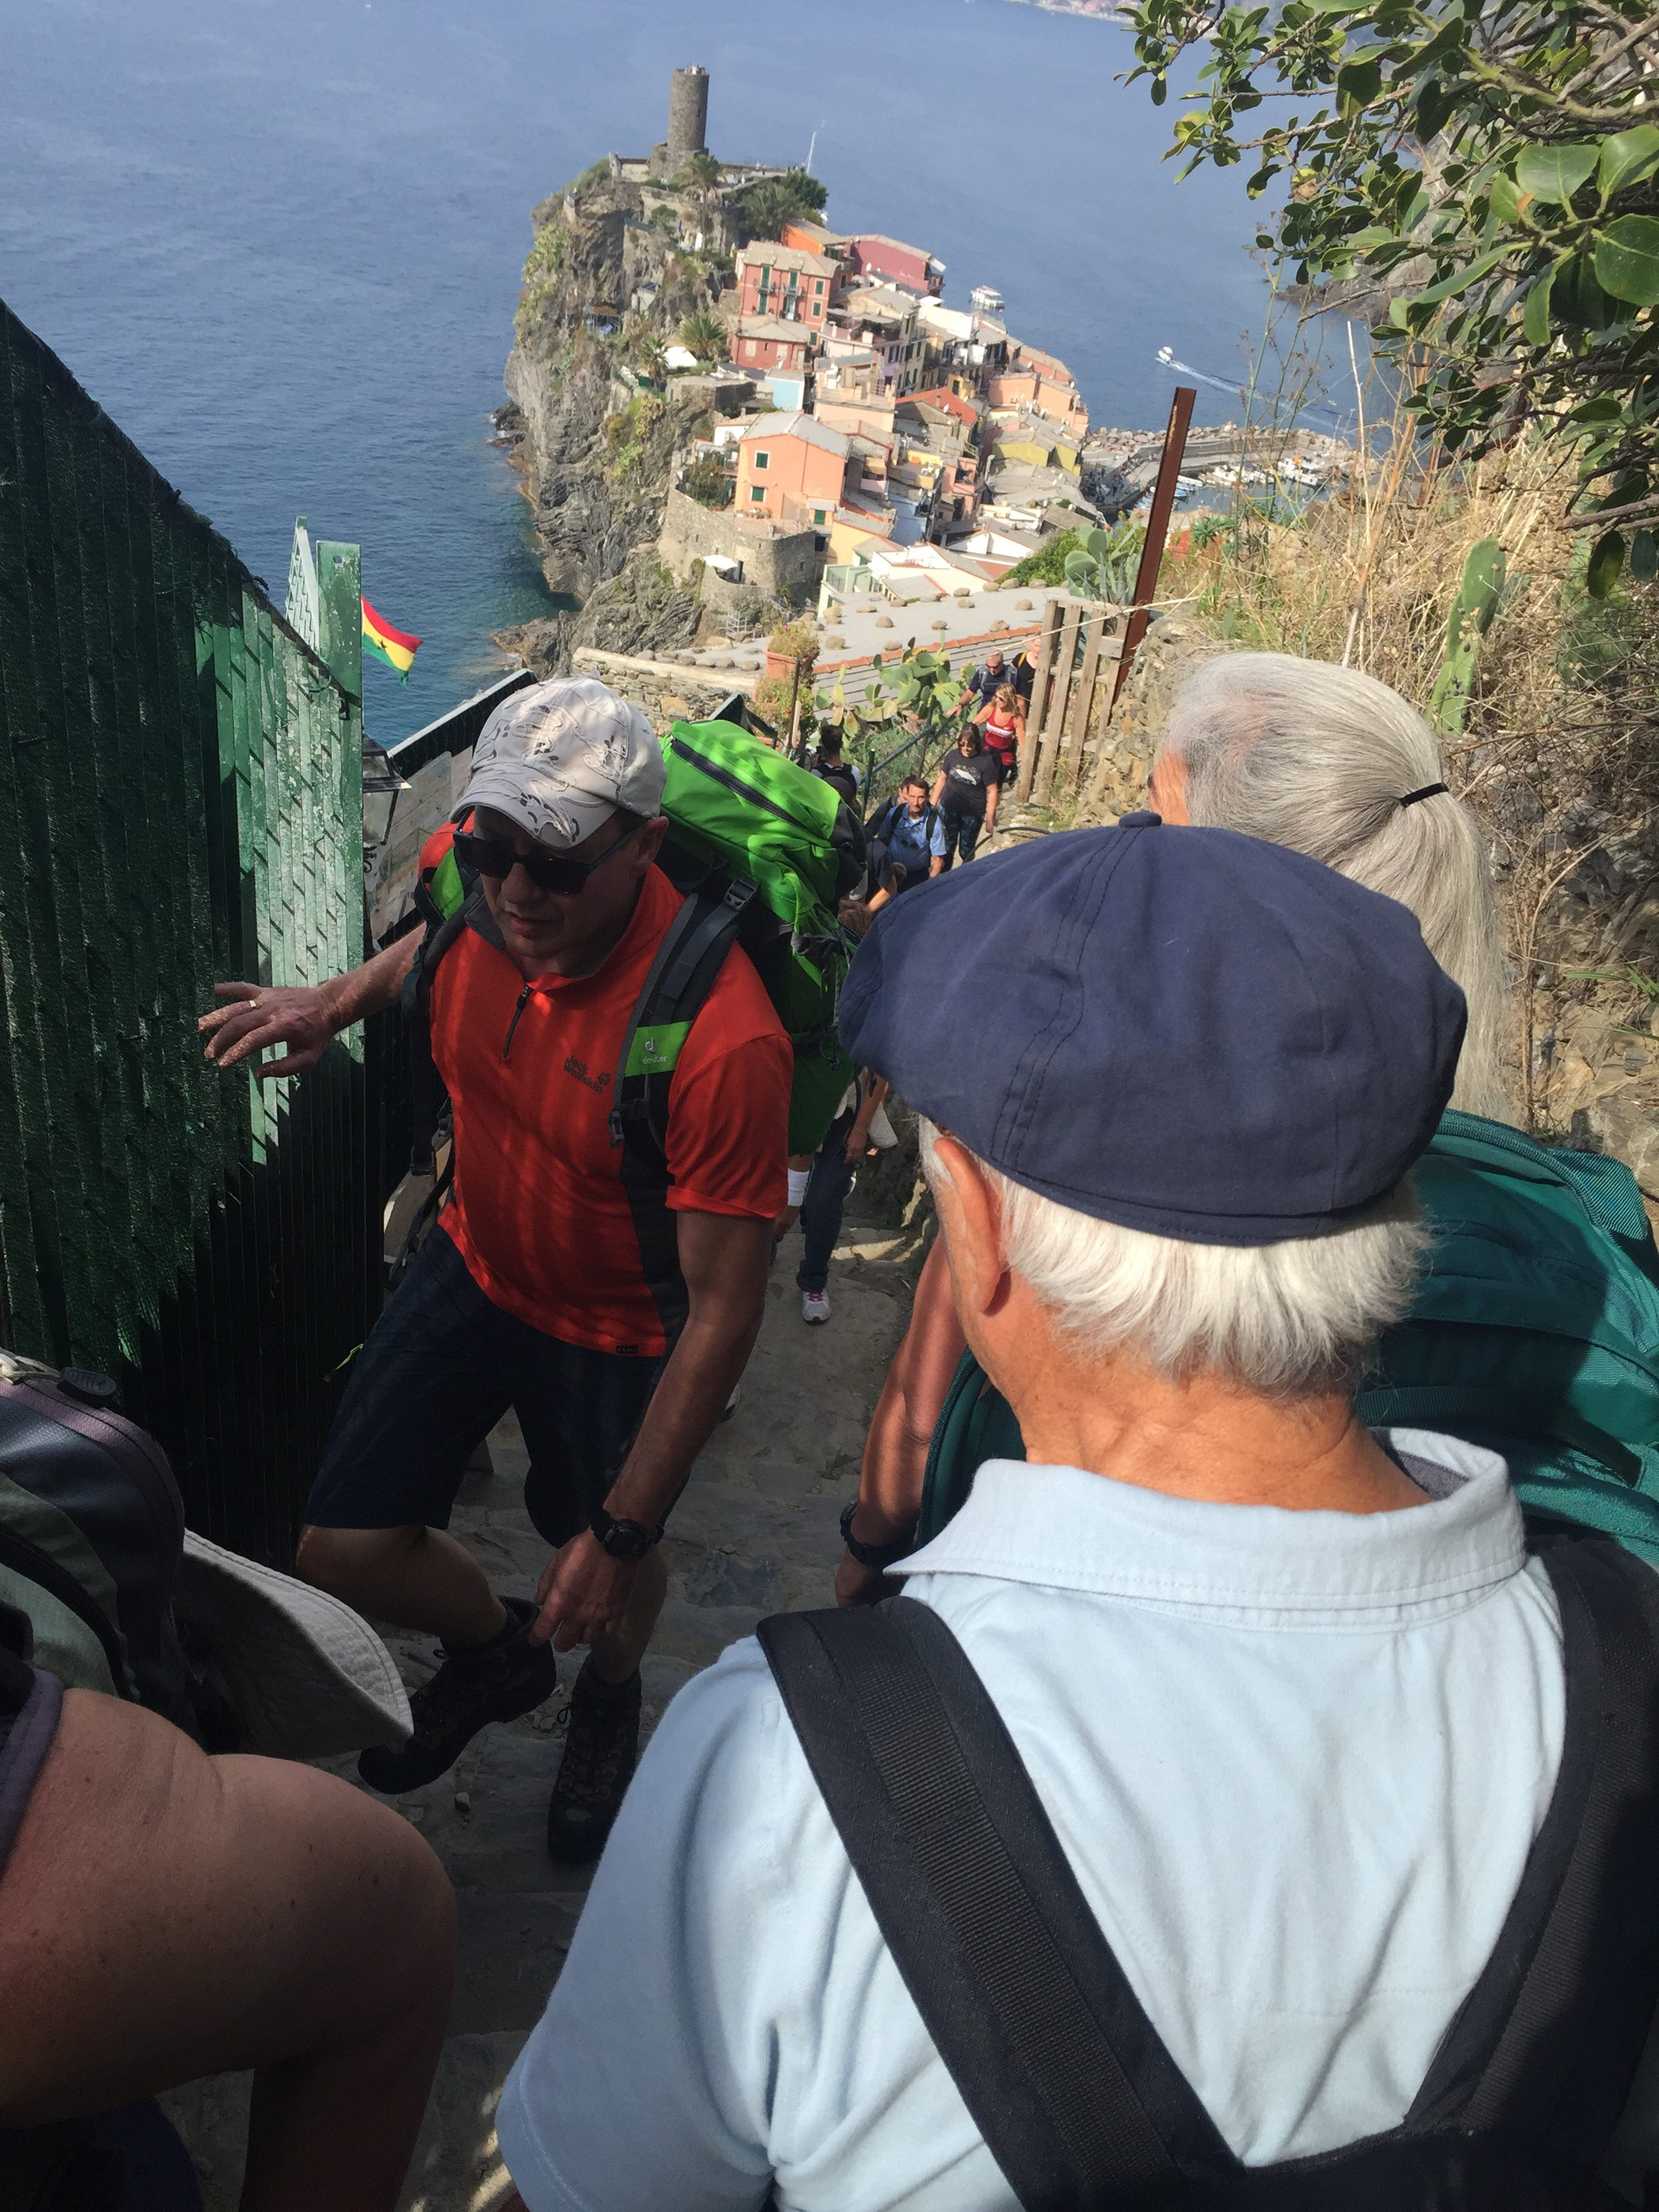 Camogli, The Secret Alternative to Cinque Terre - Her Bags Were Packed